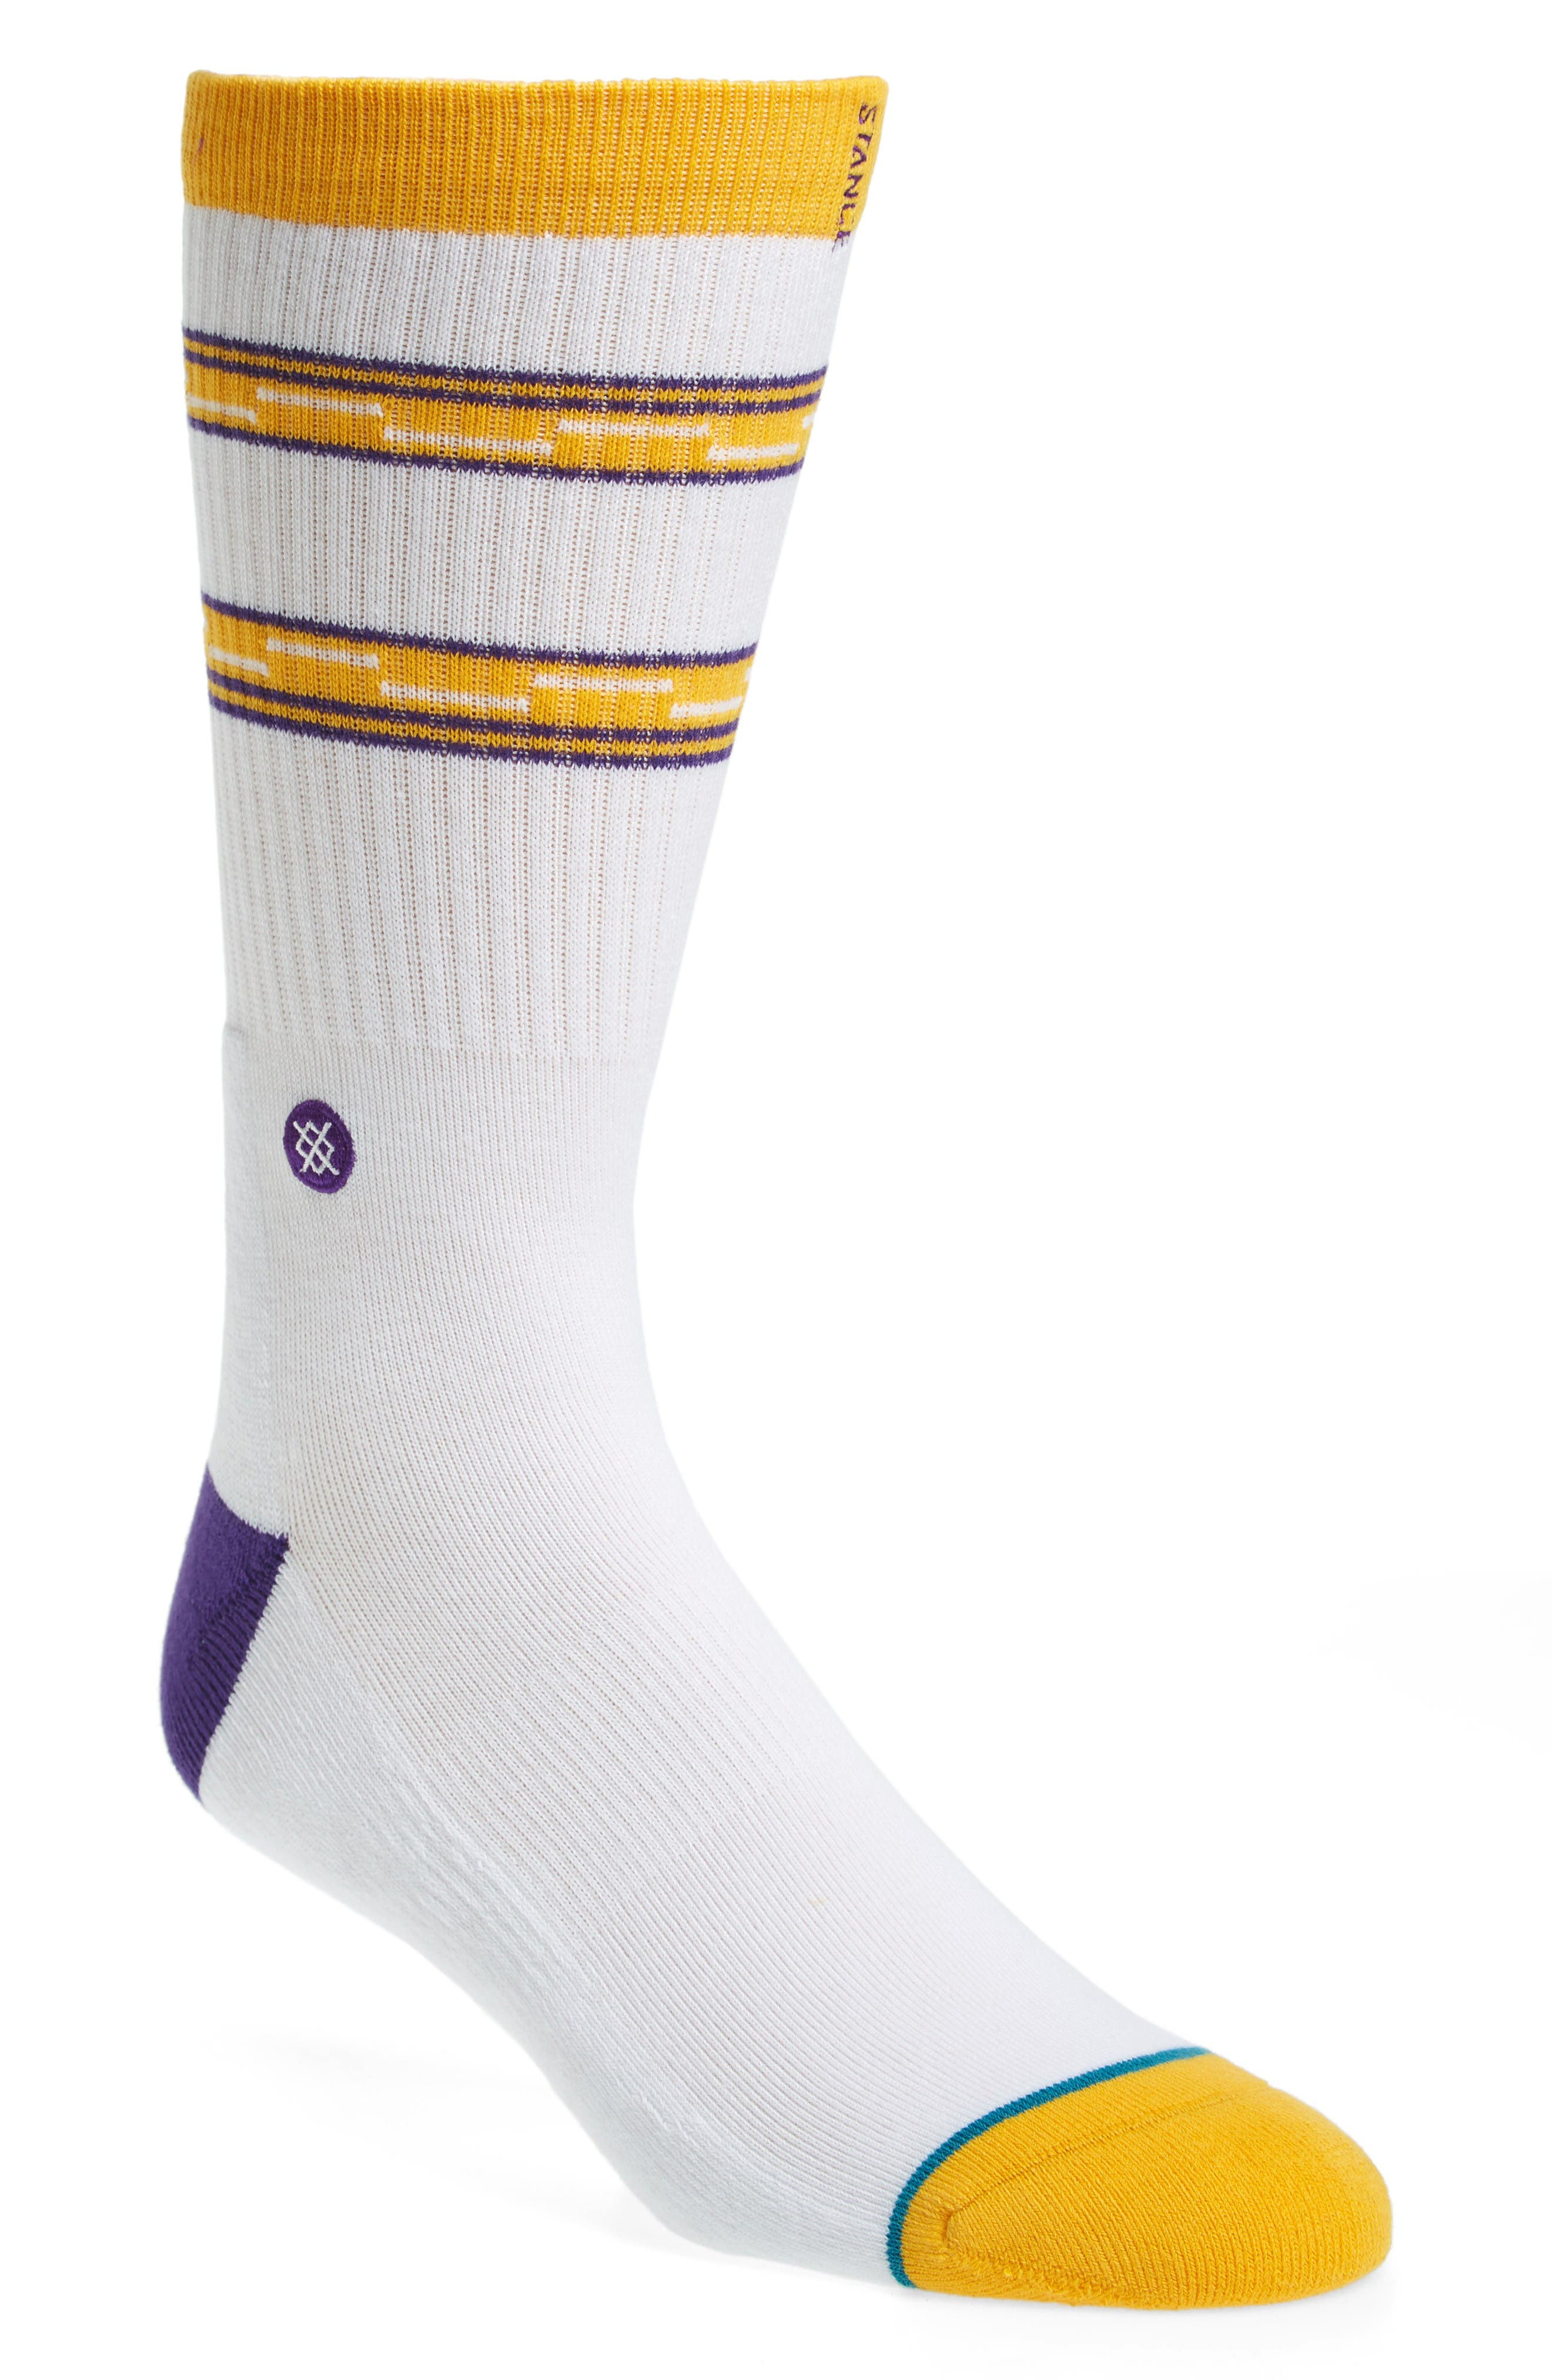 Alternate Image 1 Selected - Stance Los Angeles Lakers Arena Core Socks